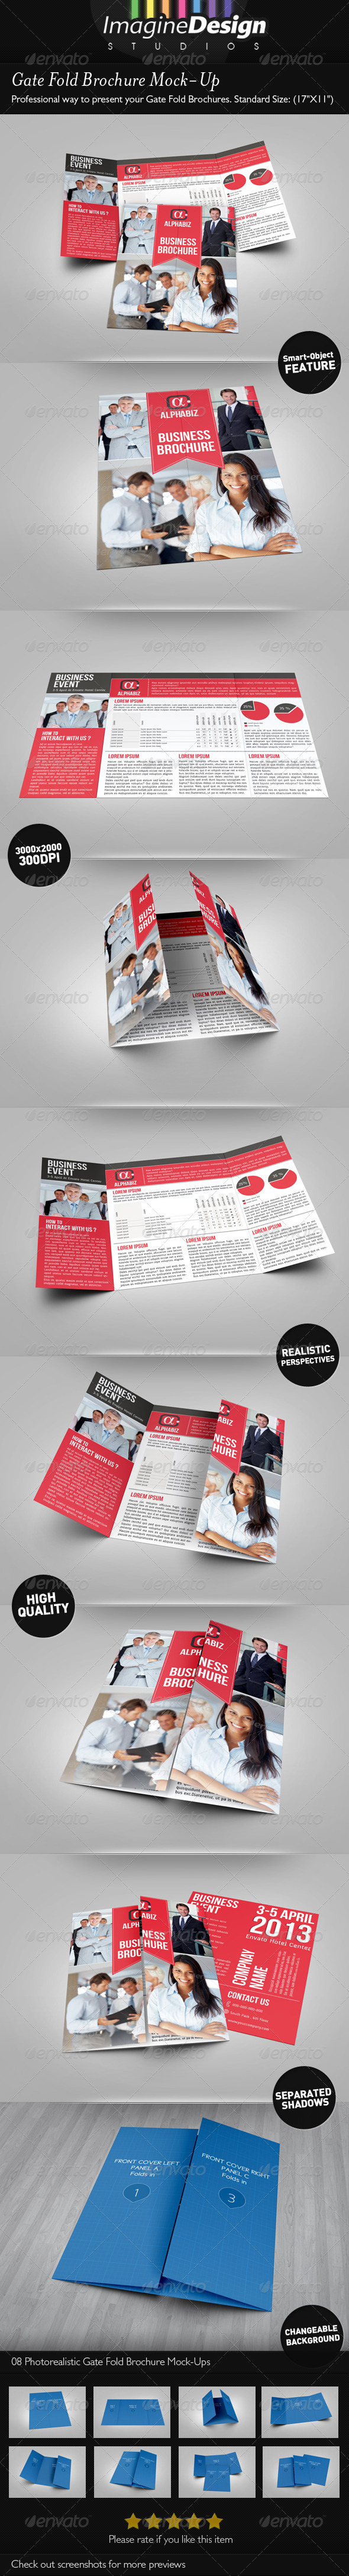 Gate Fold Brochure Mock-Up - Brochures Print